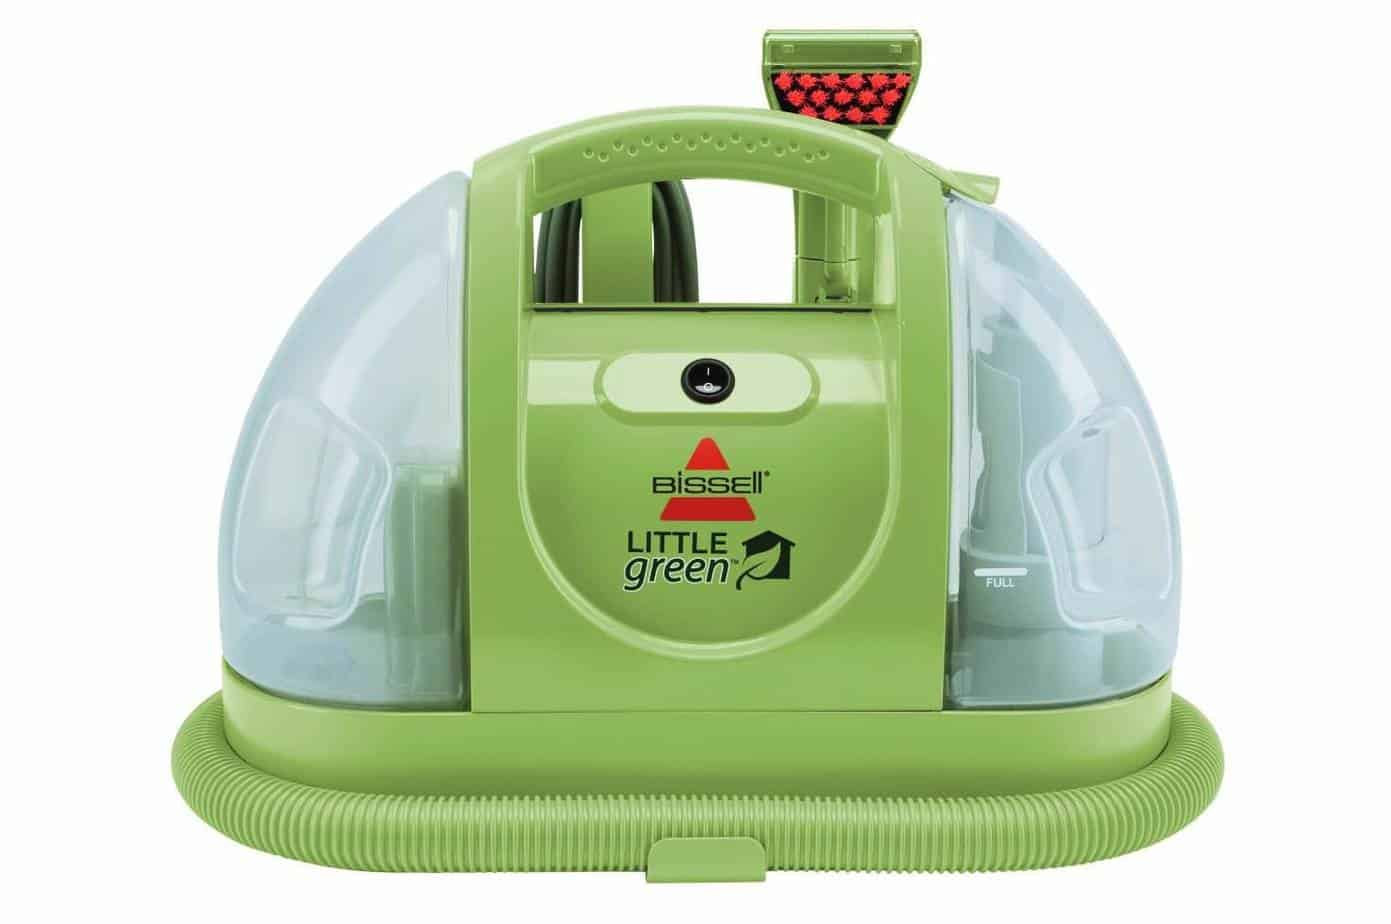 BISSELL Little Green Multi-Purpose